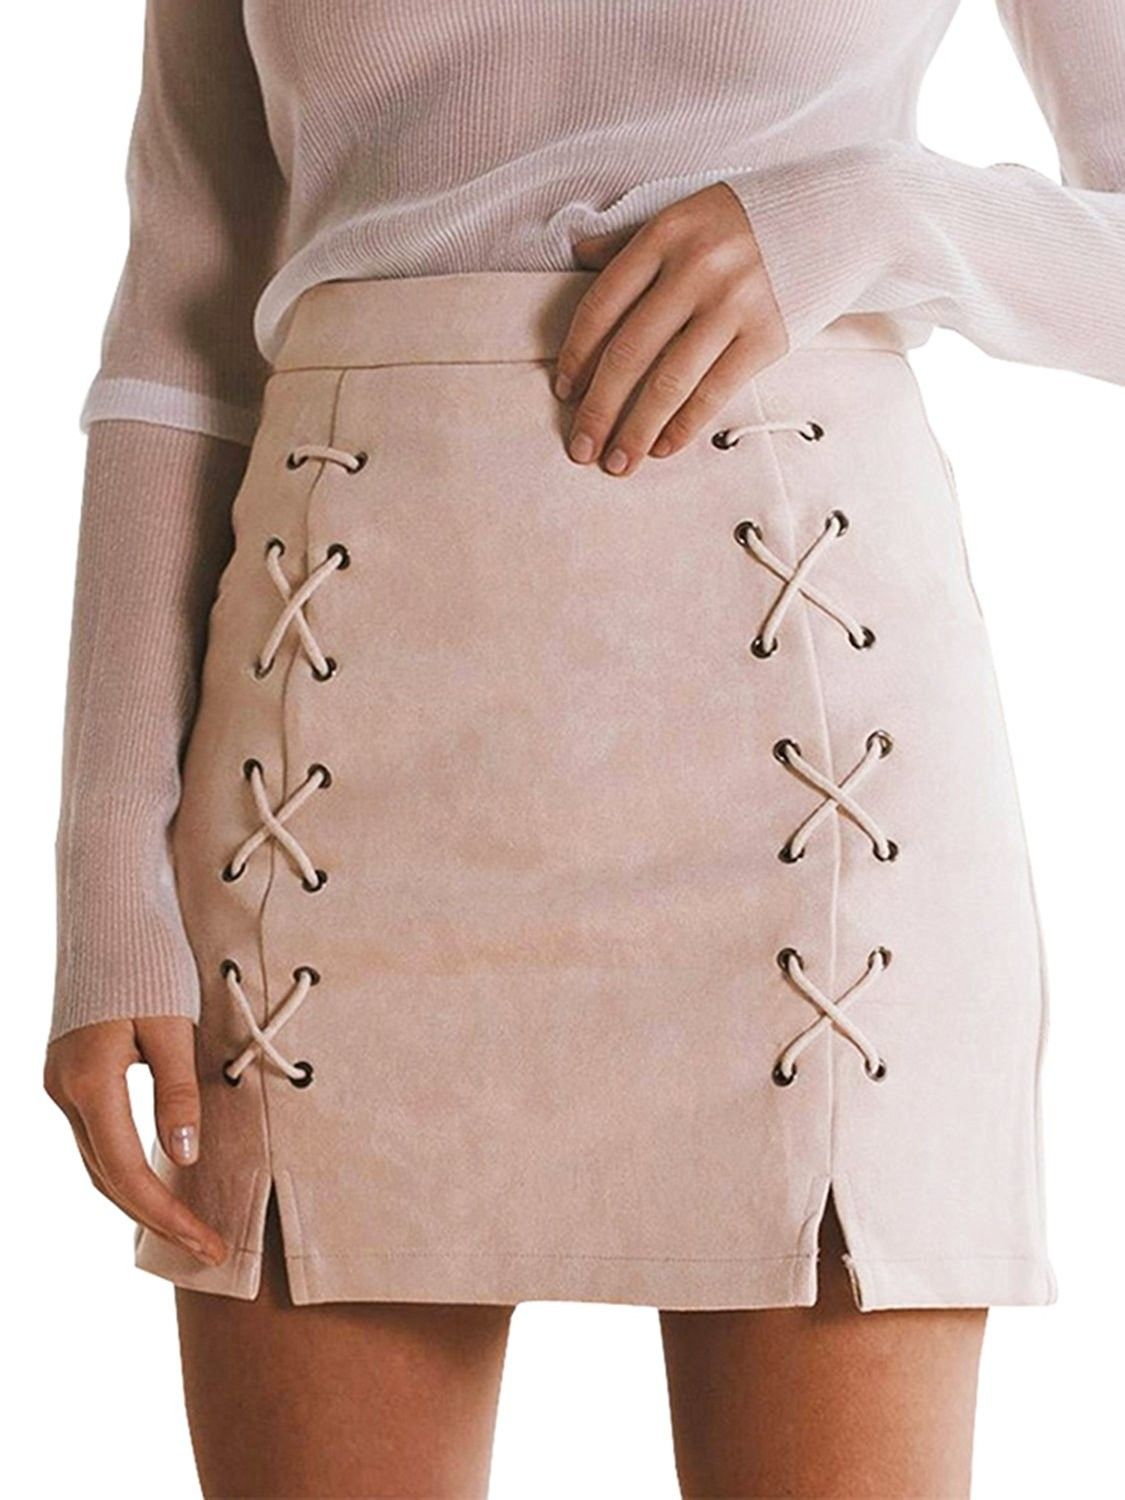 c1310ef1f5823c Women's Clothing, Skirts, Women's Slit Lace Up High Waist Bodycon Faux Suede  Skirt - Nude Pink - CJ12N38GDLI #Skirts #fashion #clothing #style #shopping